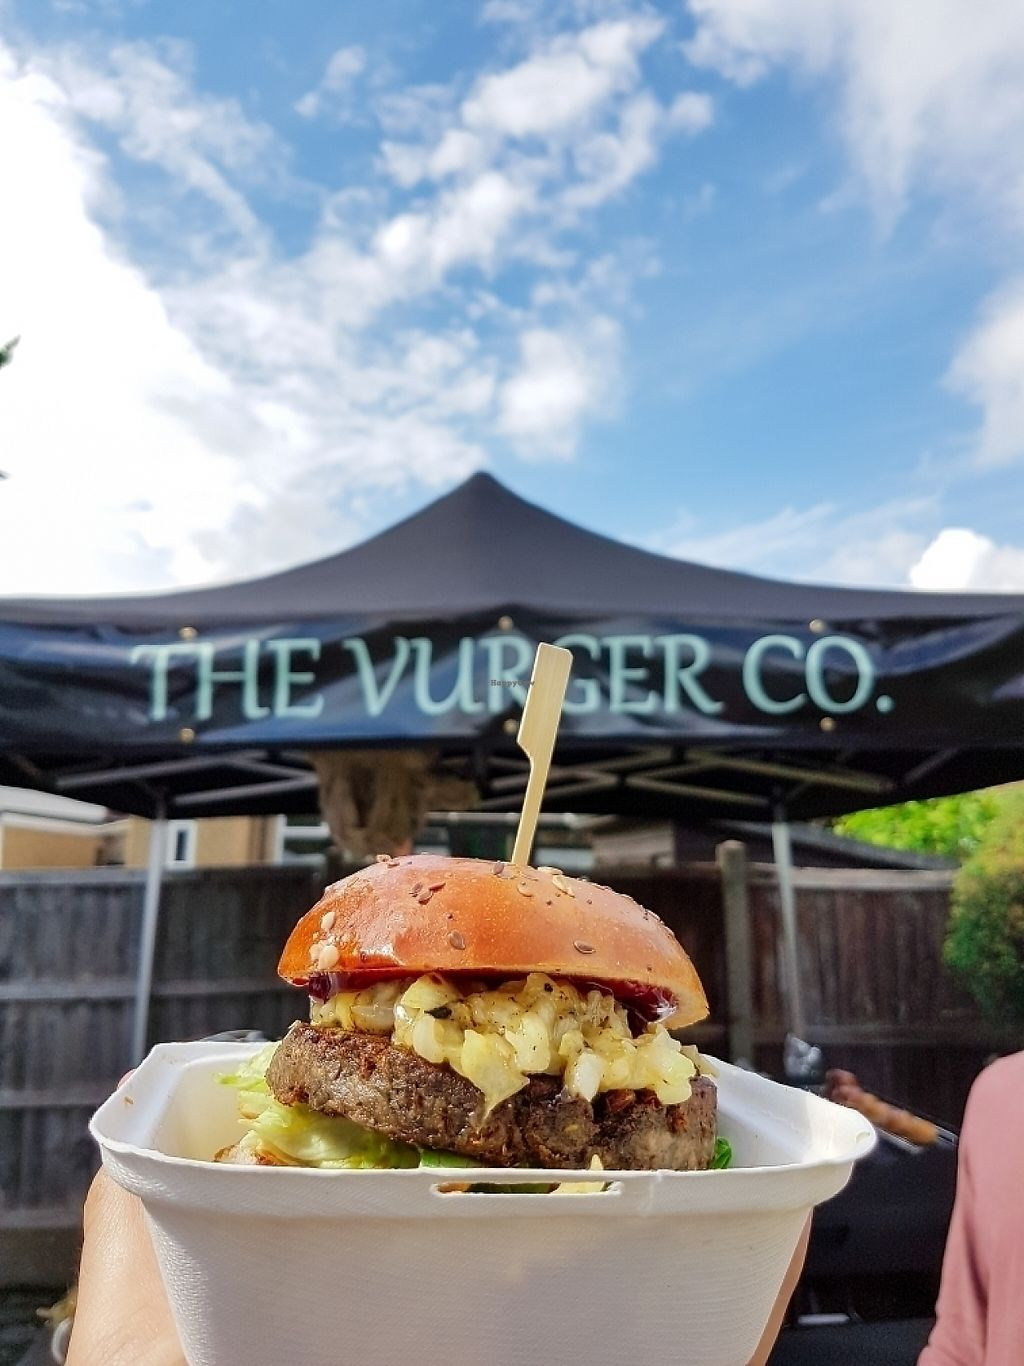 """Photo of The Vurger Co.  by <a href=""""/members/profile/orumney"""">orumney</a> <br/>Shroom Melt <br/> June 3, 2017  - <a href='/contact/abuse/image/92574/265376'>Report</a>"""